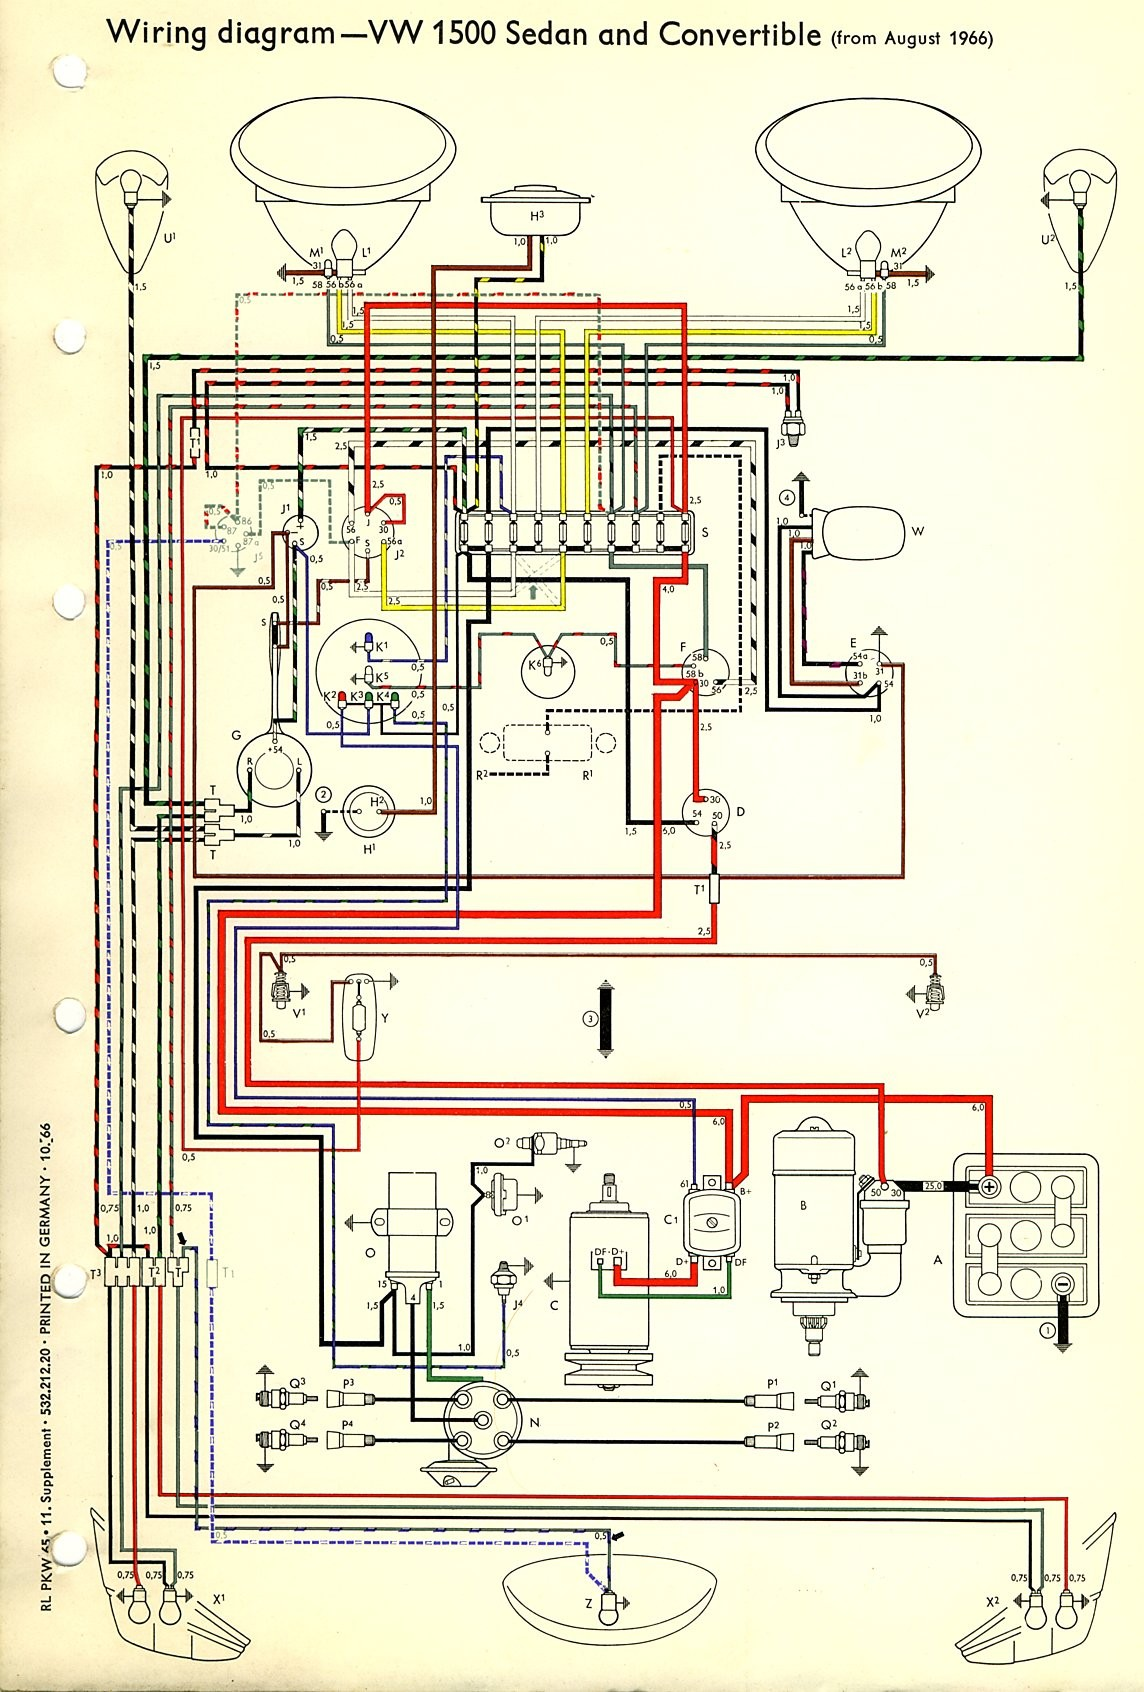 Volkswagen Pat Fuse Box Diagram on 1999 volkswagen transmission diagram, 1999 volkswagen headlight, 1999 volkswagen wiring diagram, volkswagen beetle fuse box diagram, 1999 volkswagen battery diagram, 1999 volkswagen engine diagram,